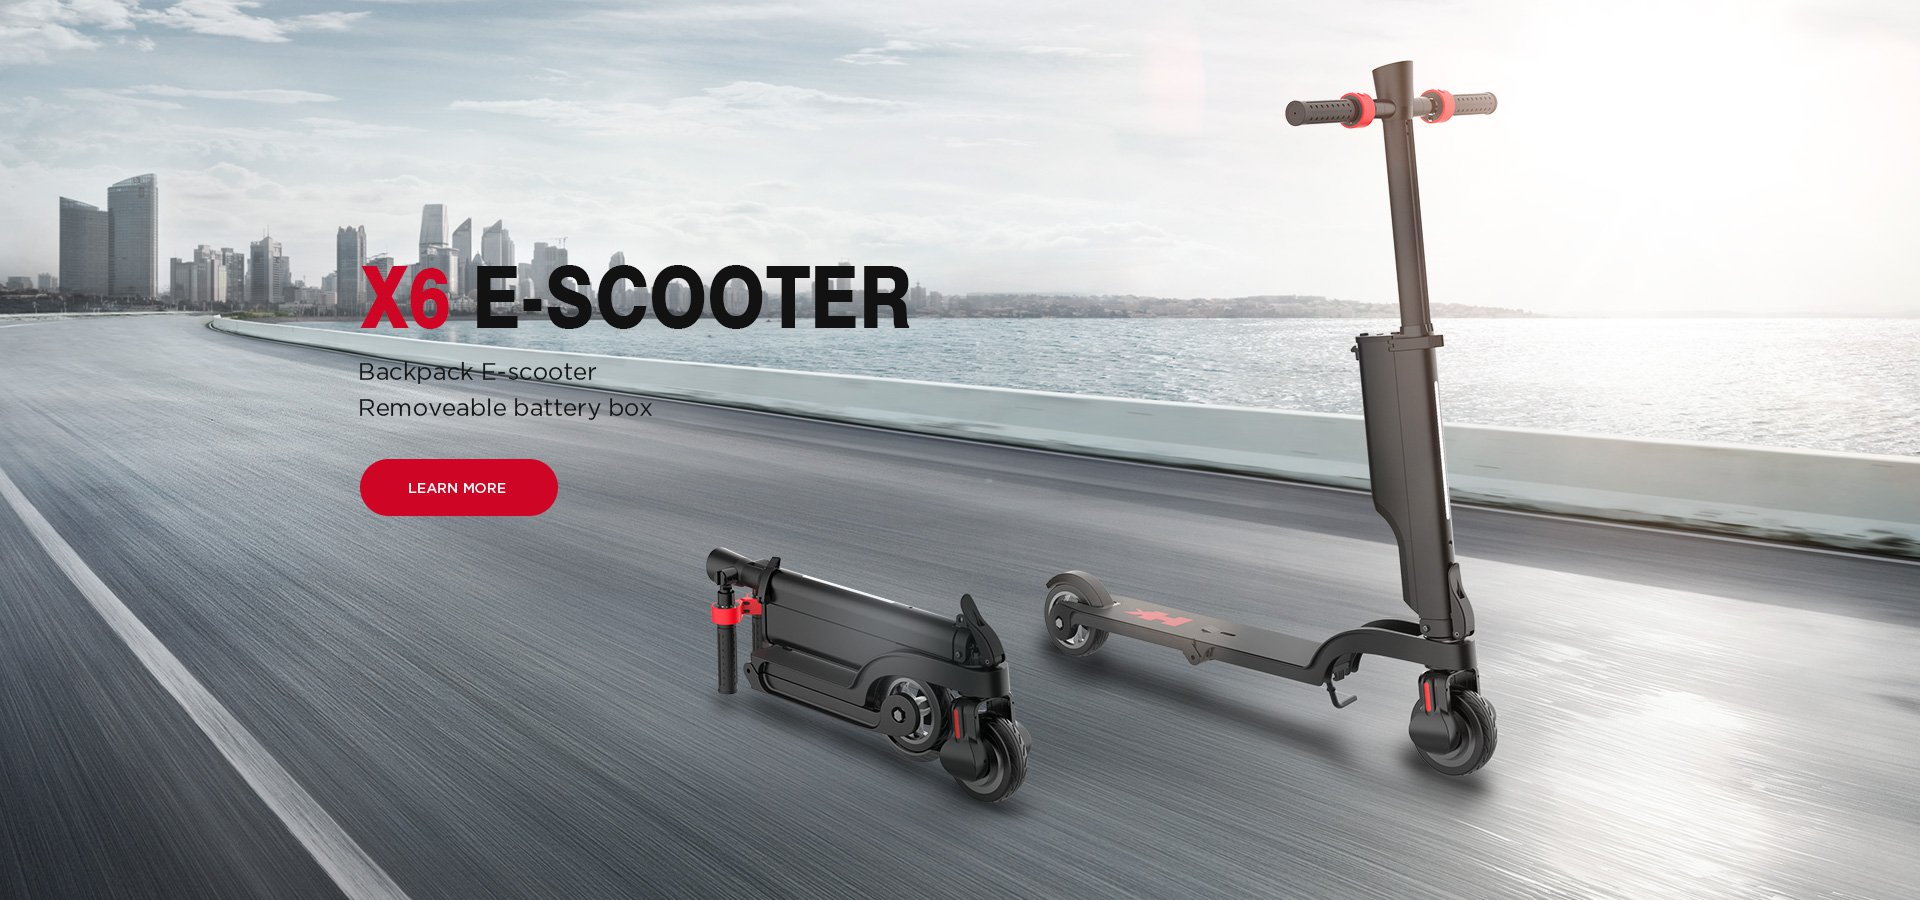 X6 Backpack E-scooter